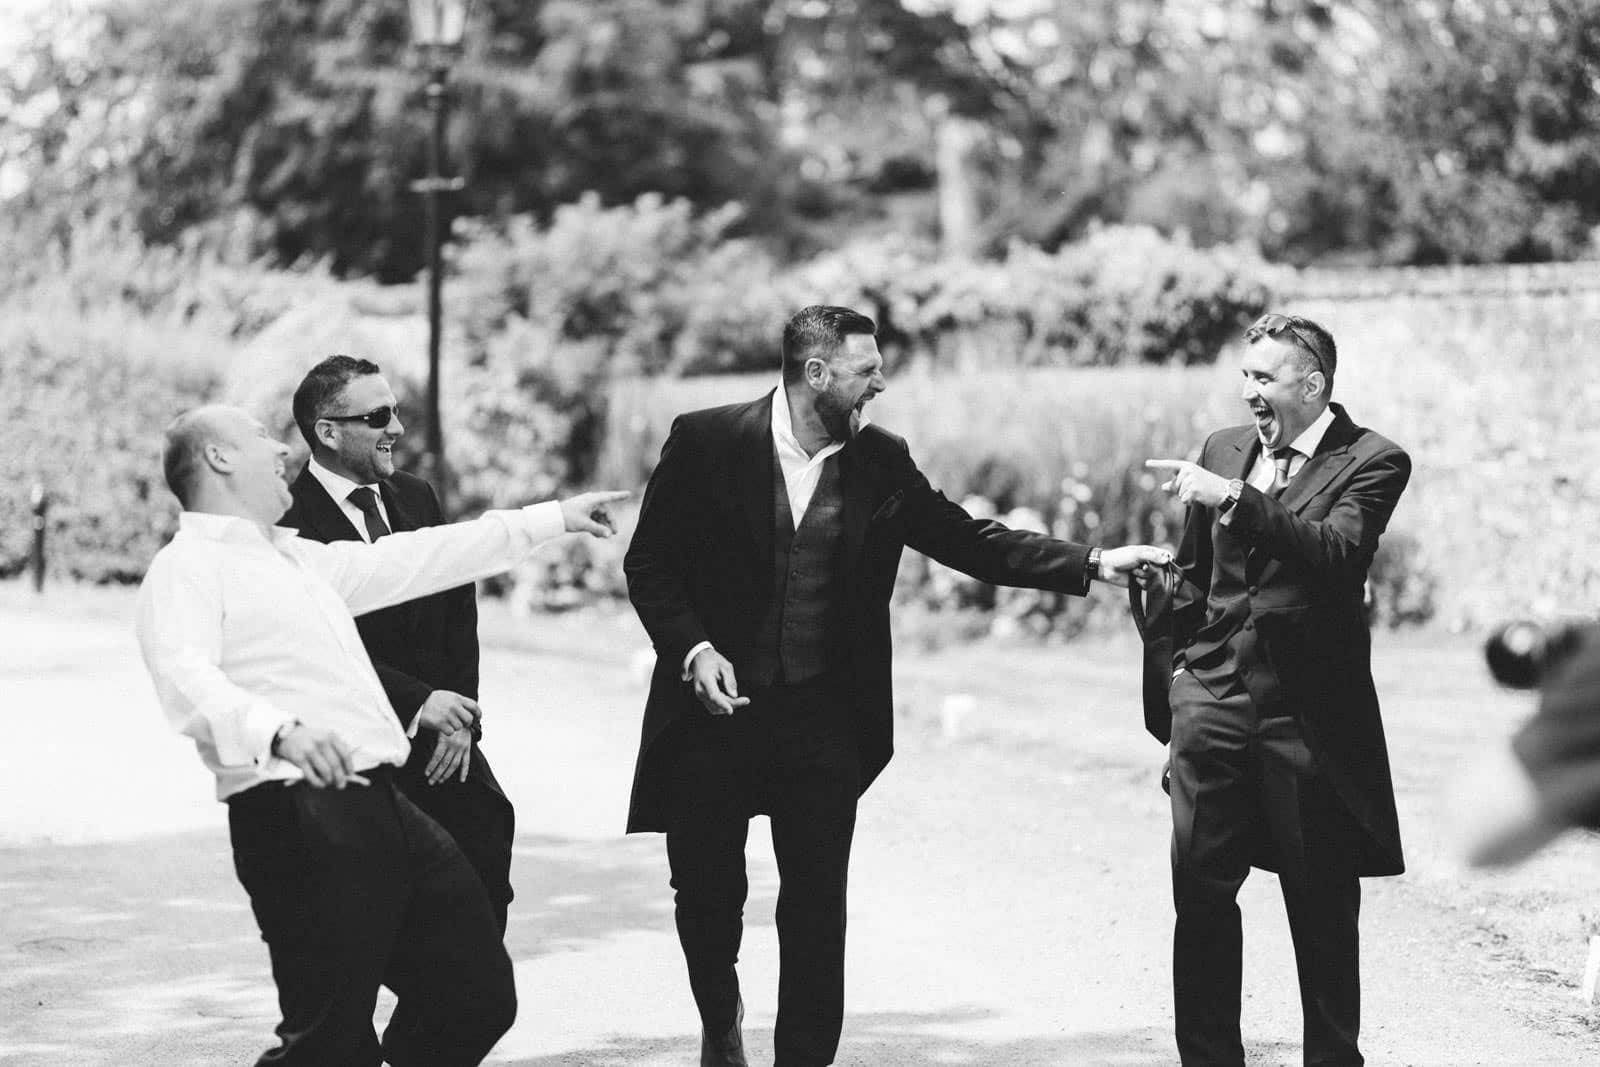 Groom and Groomsmen messing around and laughing having a good time